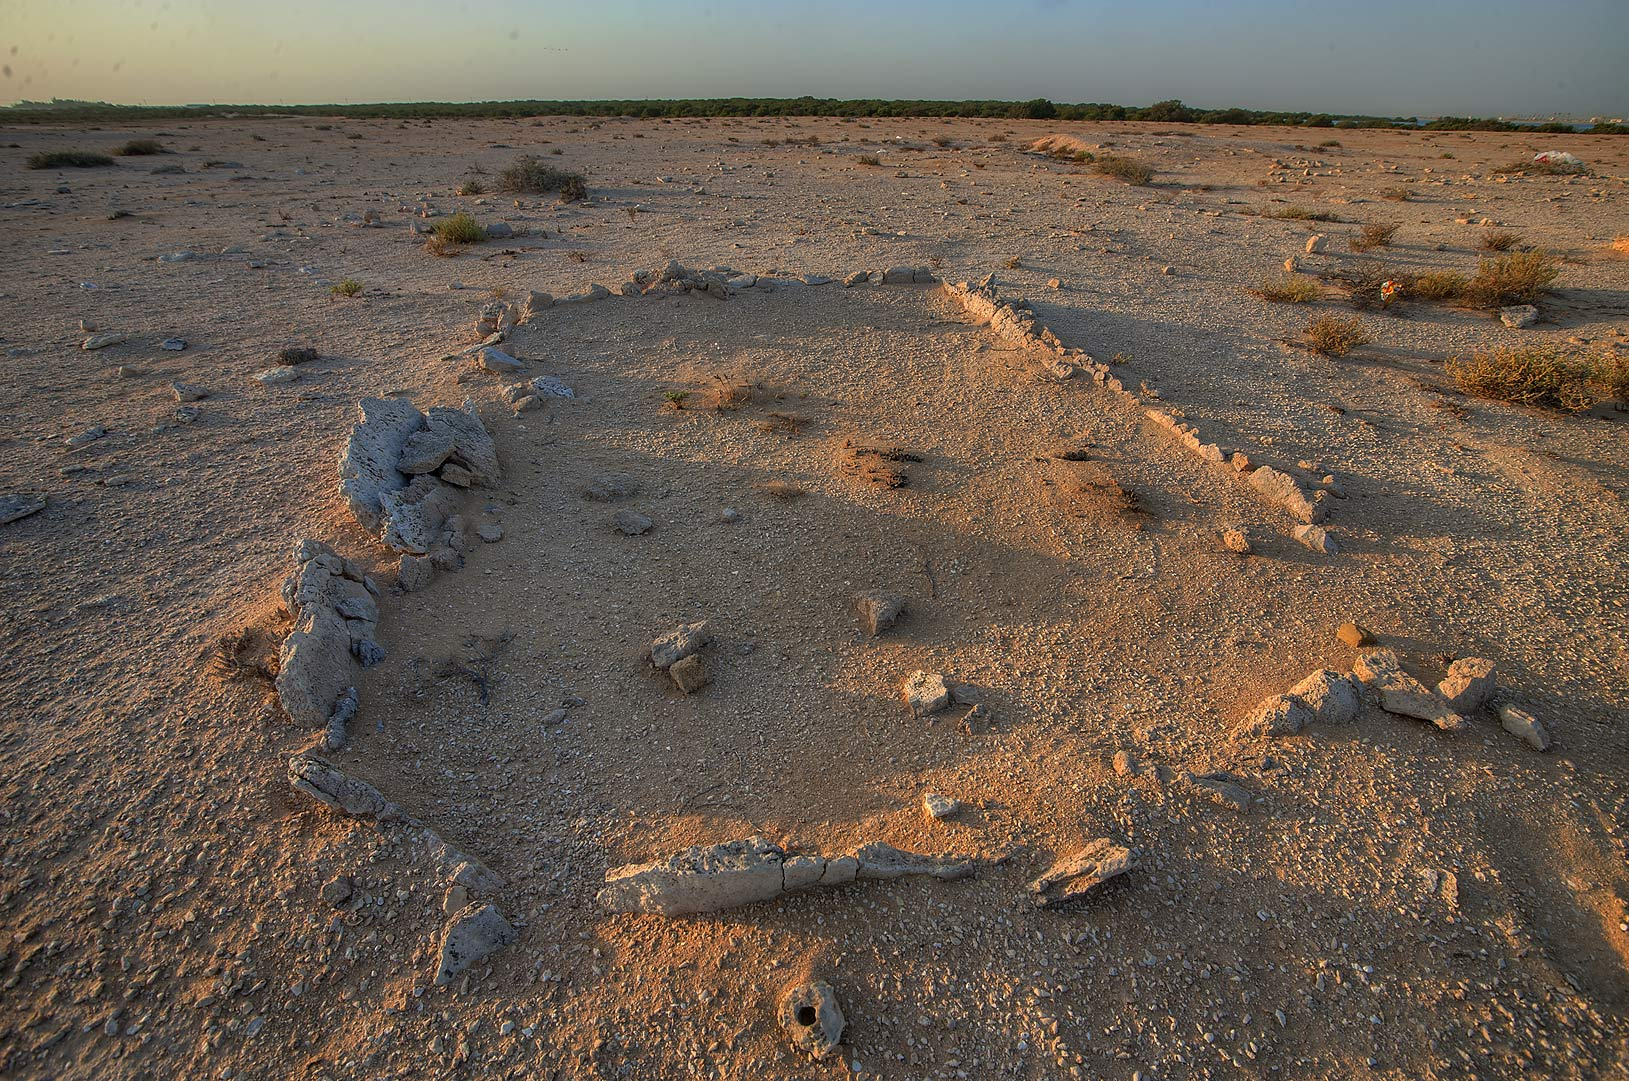 Remains of excavated antique walls in Purple...Bin Ghanim) at sunrise. Al Khor, Qatar